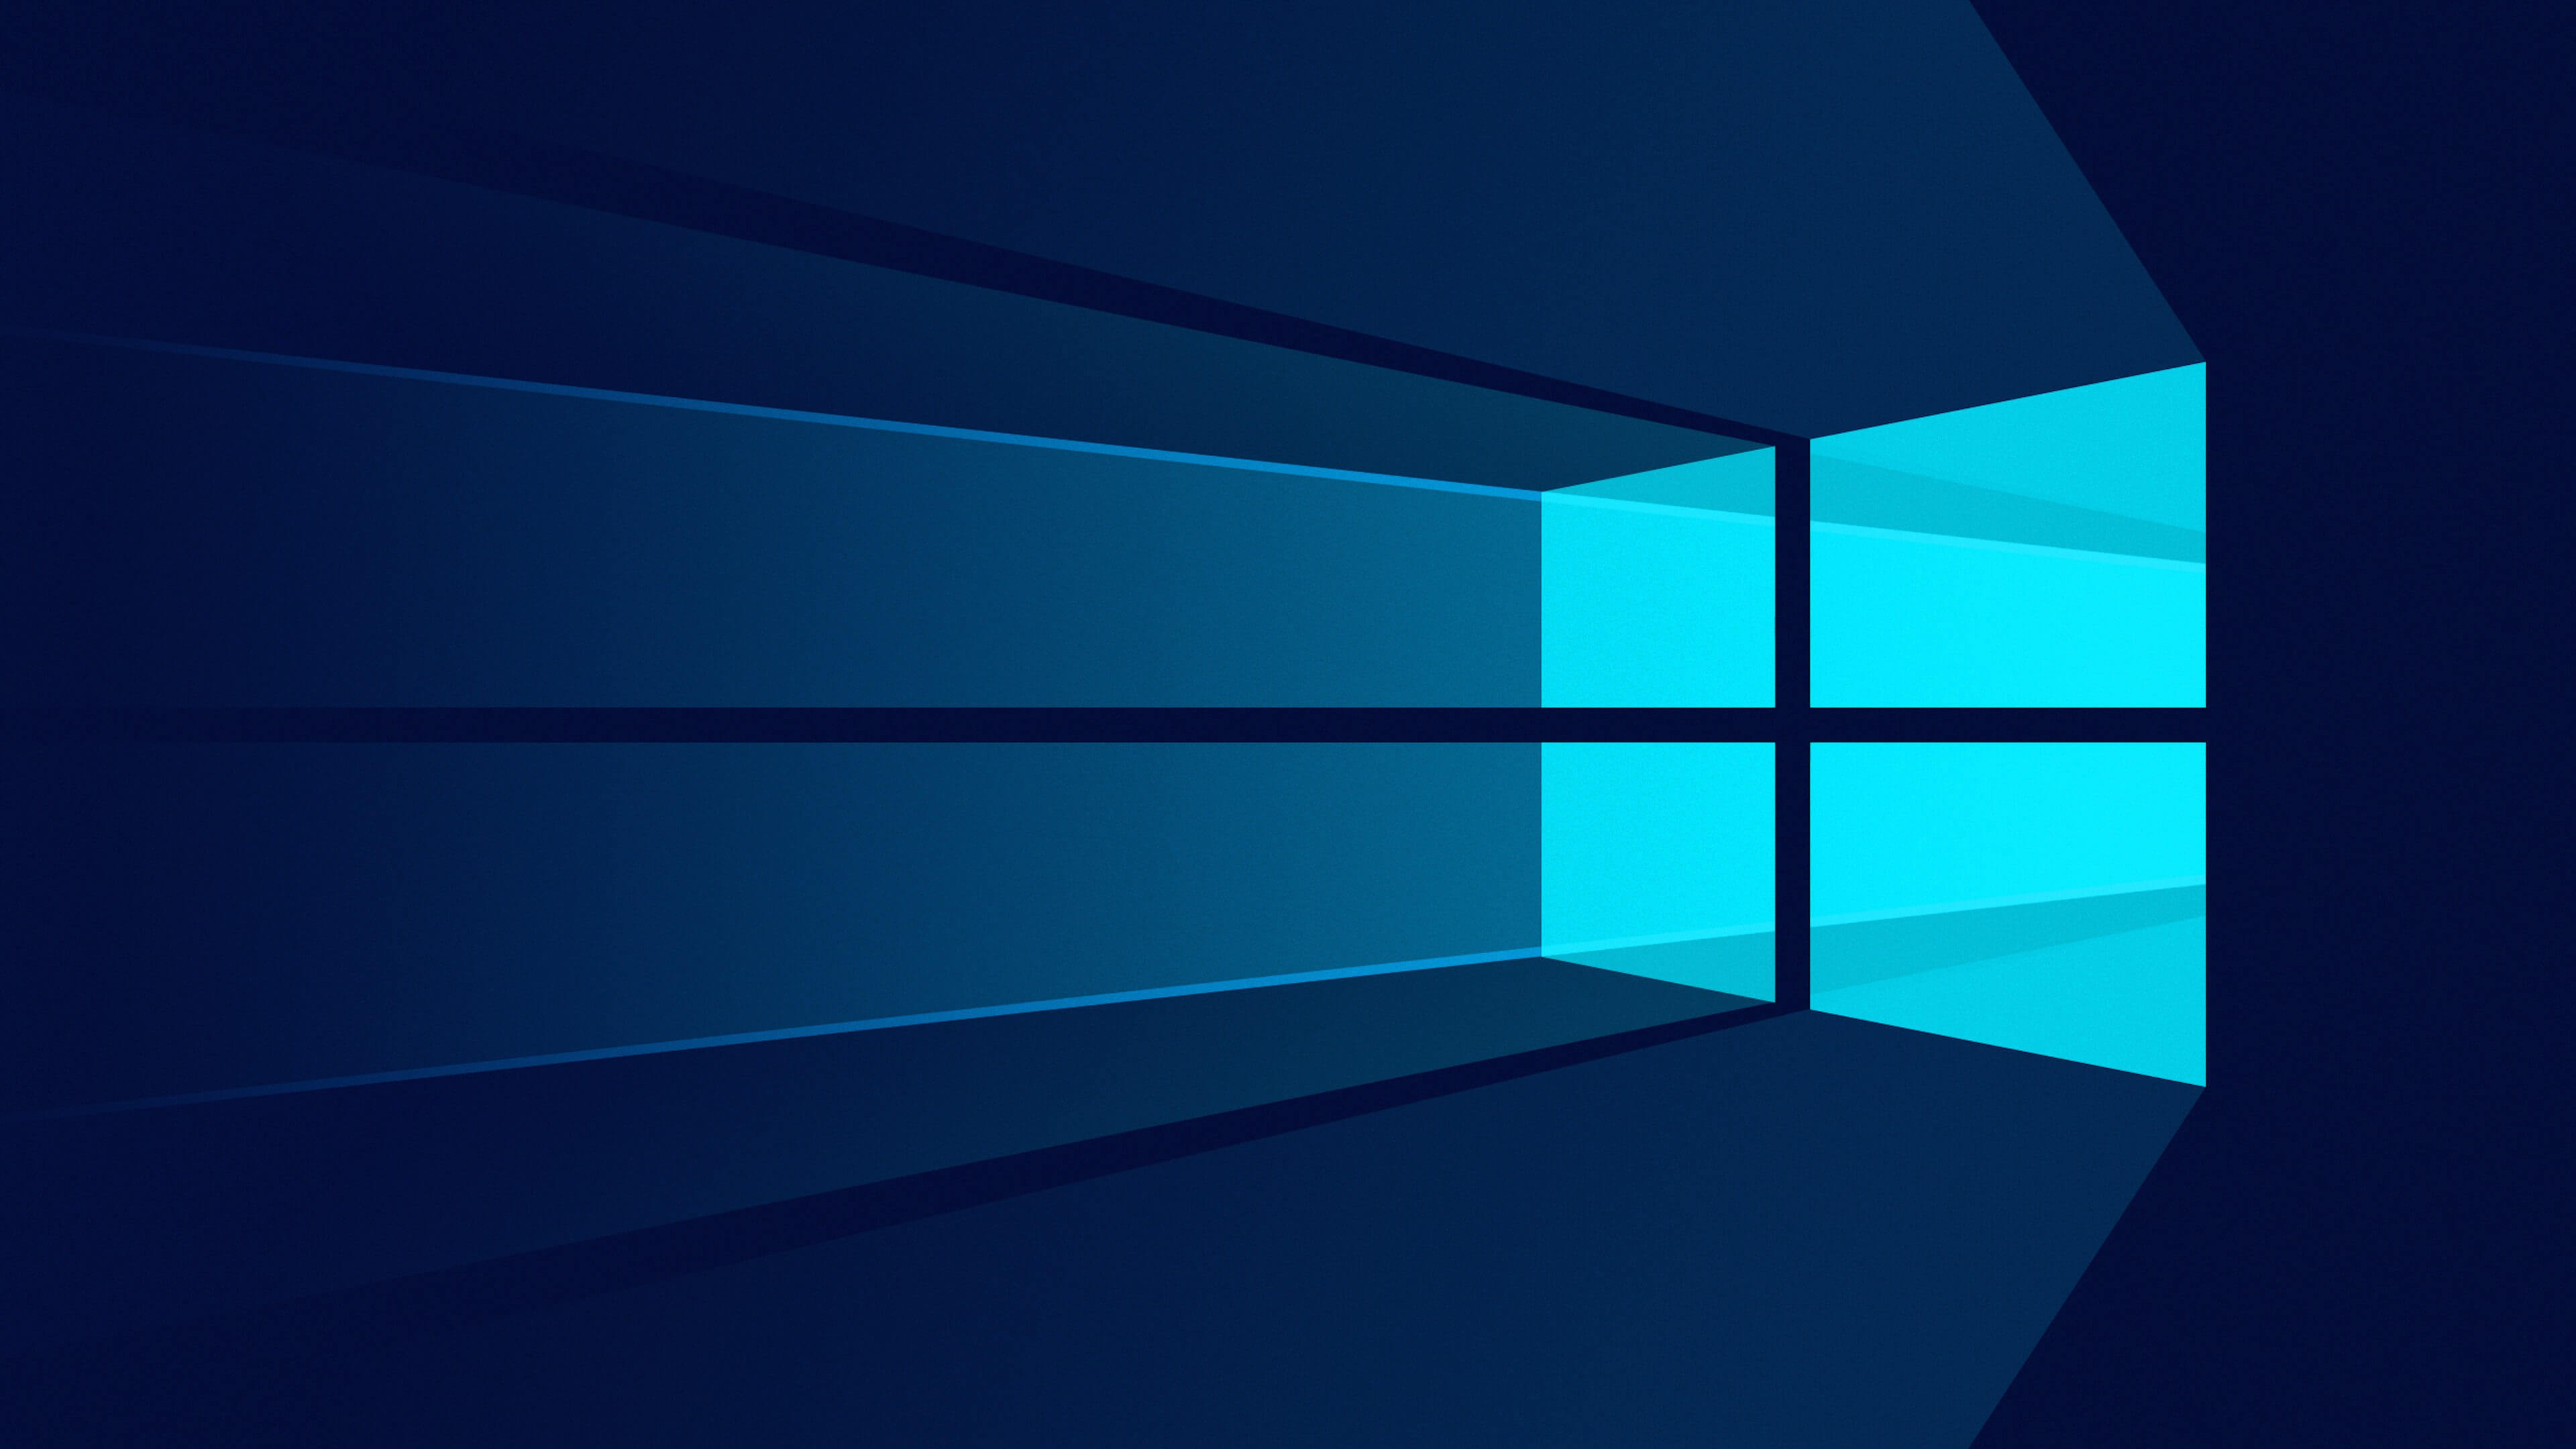 Windows wallpapers and desktop backgrounds up to 8k for Window 10 wallpaper